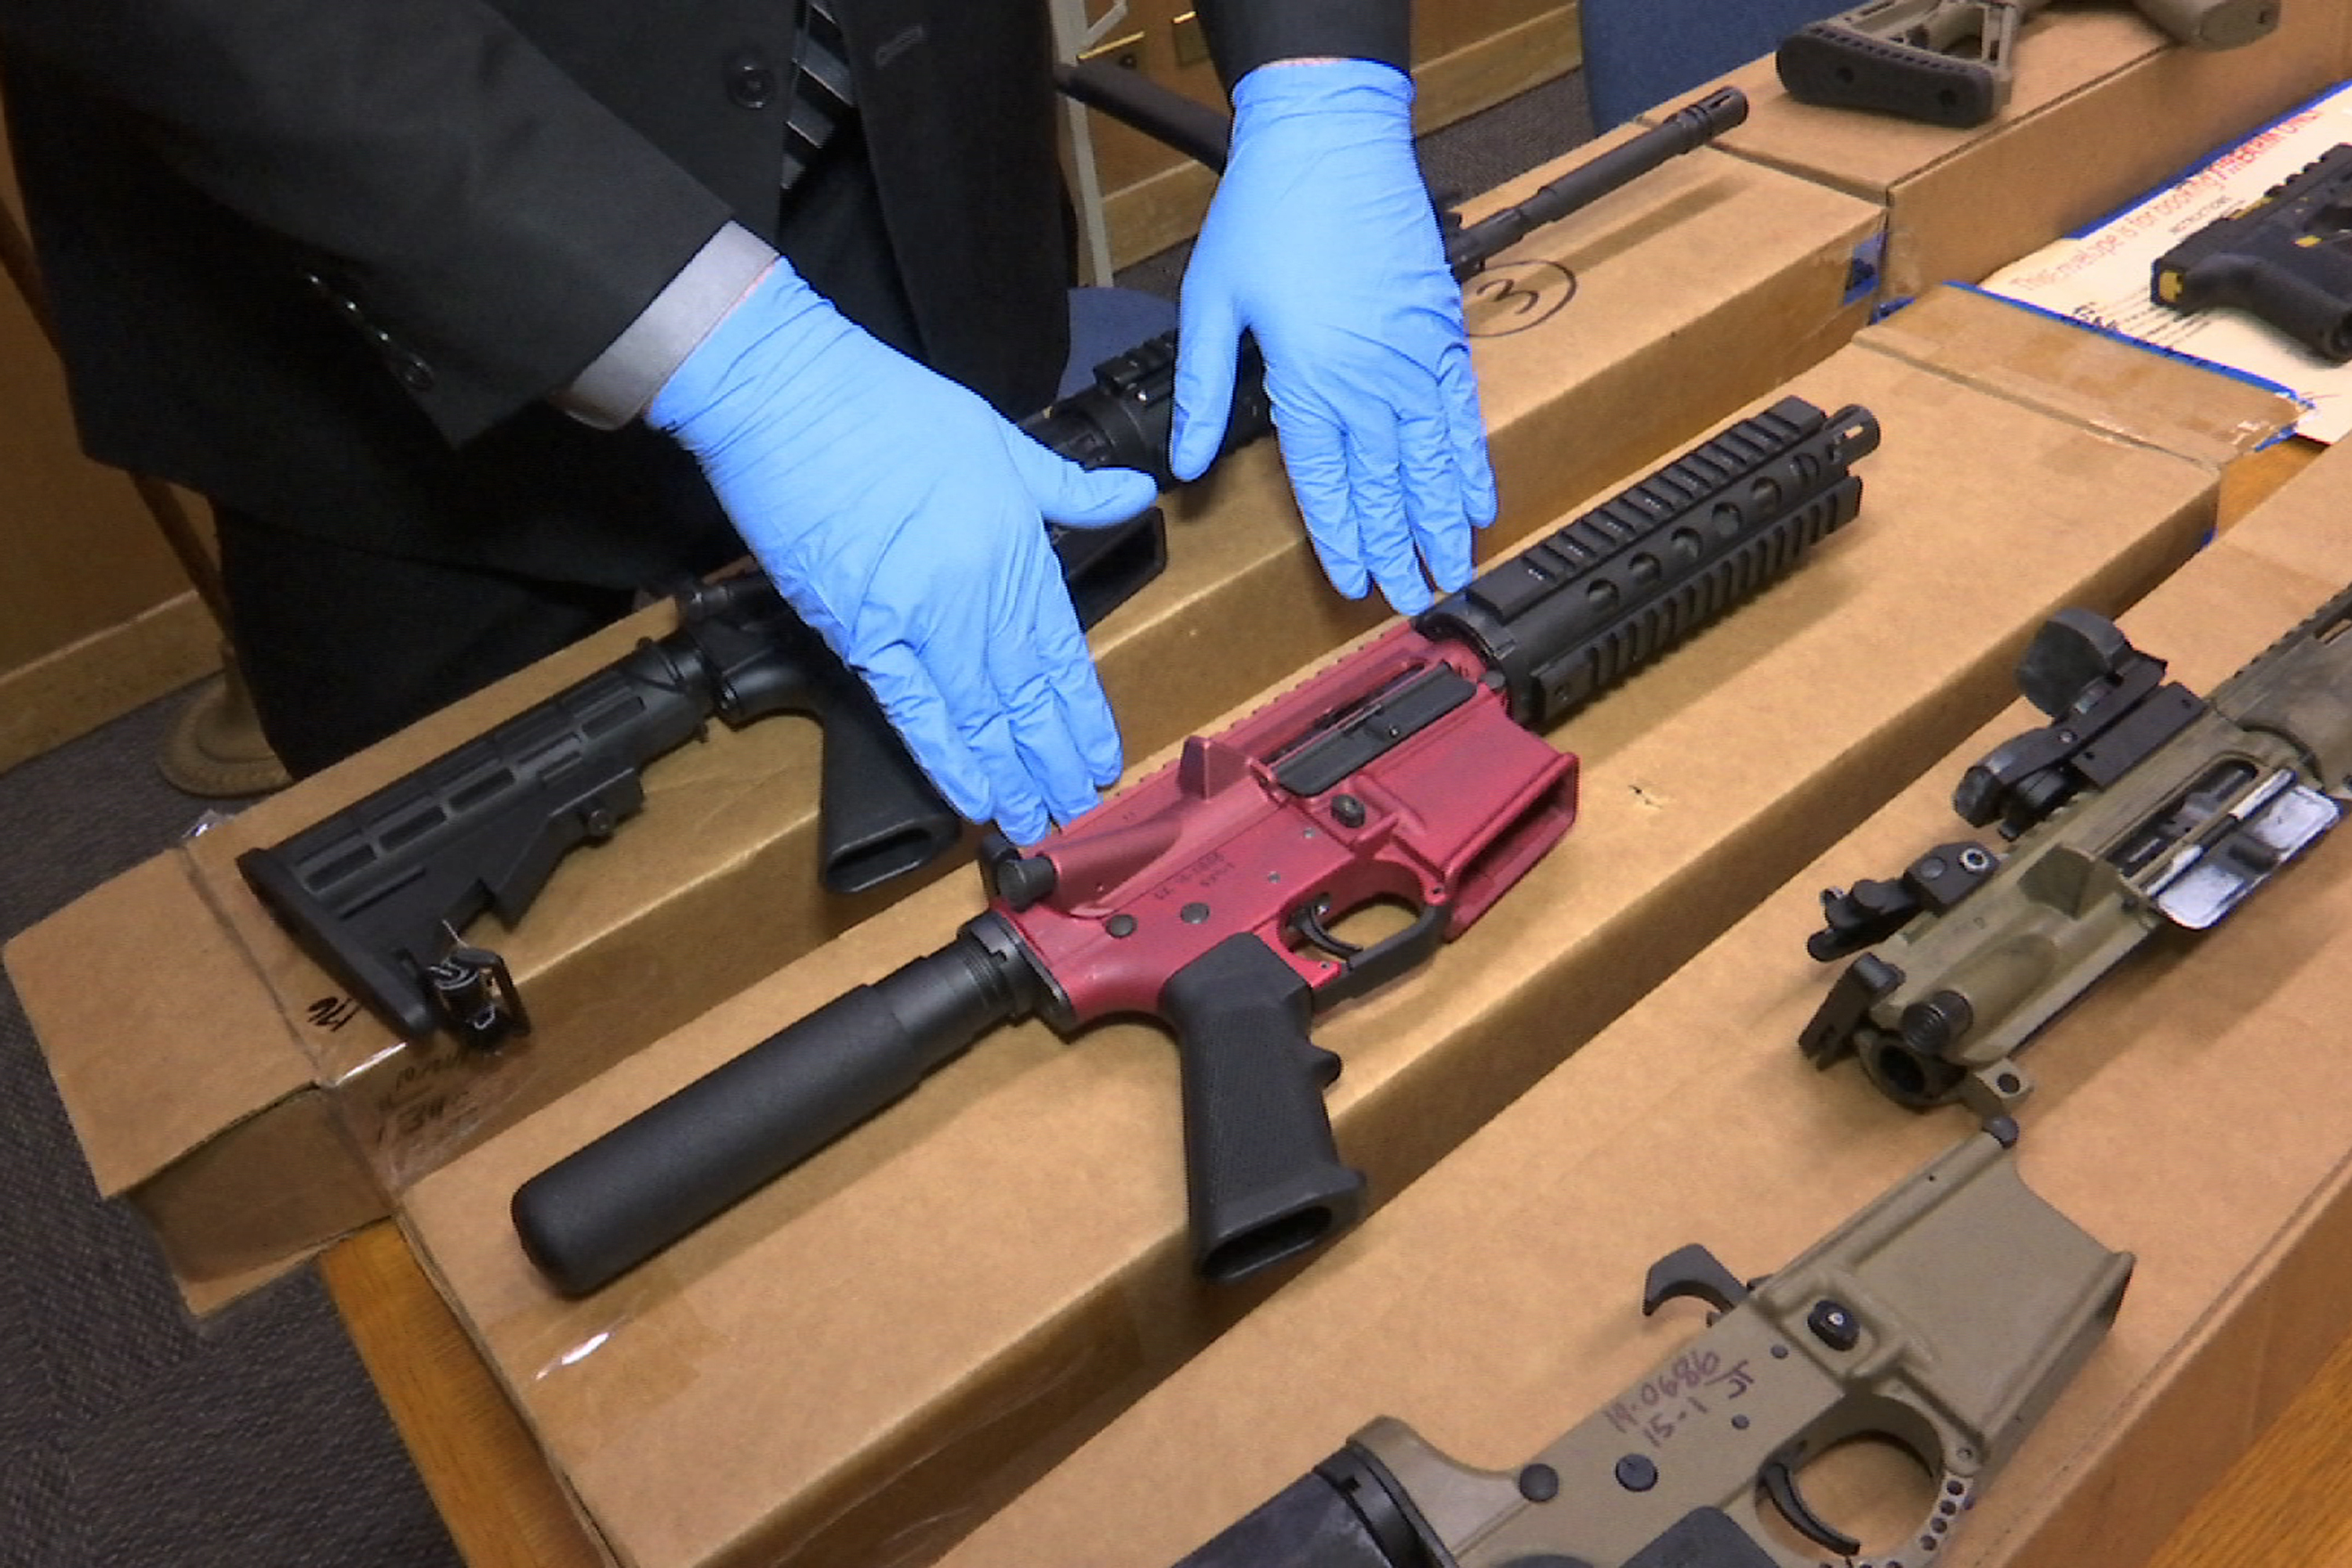 A San Franciso police officer displays several 'ghost guns' – untraceable firearms with no serial numbers or manufacturing marks.